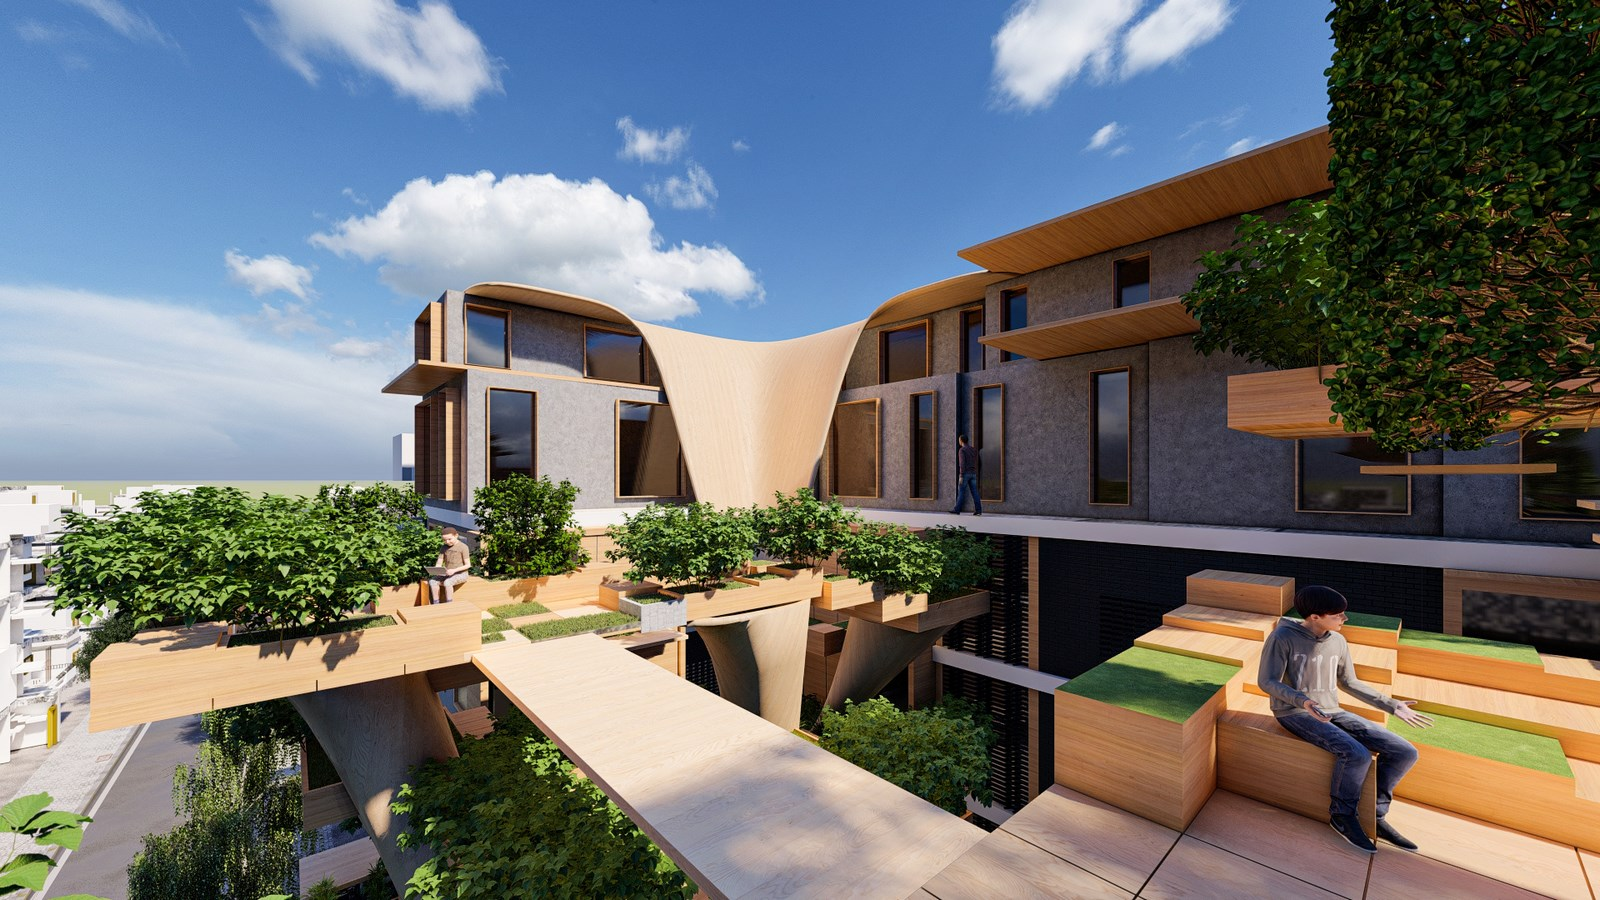 Re-Coding Smart Building in Damascus, Syria by Reparametrize Studio